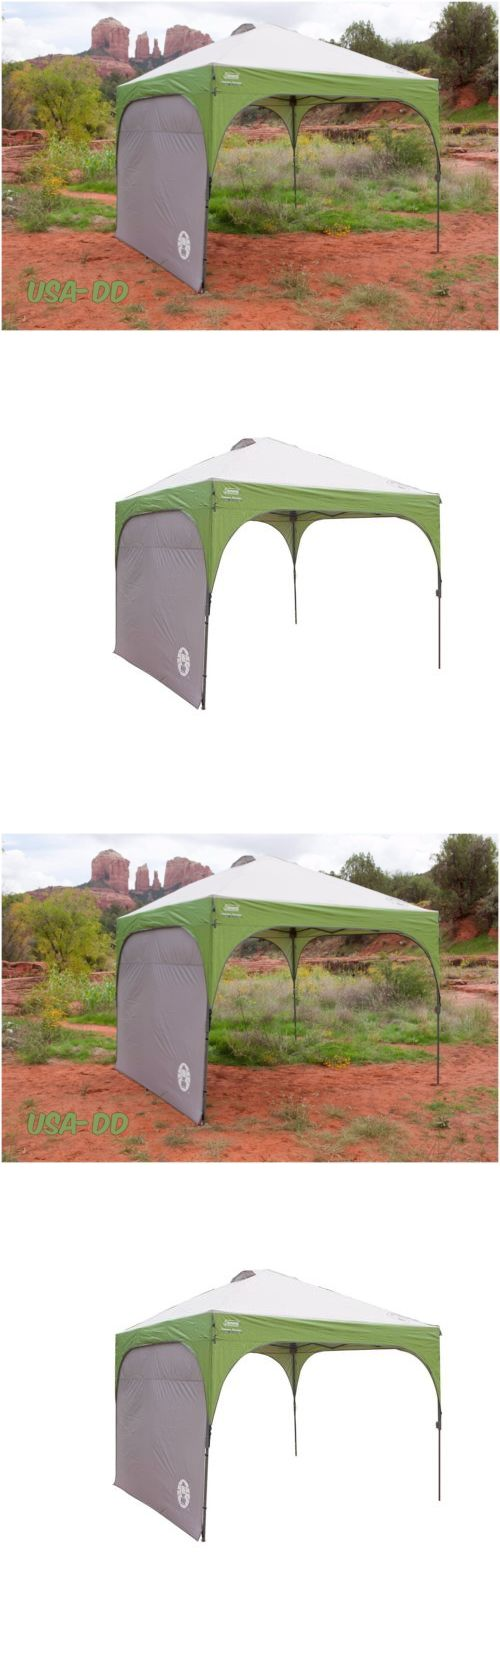 Canopies and Shelters 179011: Gazebo Camping Quick Shade Canopy Portable Wind Shelter Car Rain Sun Patio Wall -> BUY IT NOW ONLY: $33.53 on eBay!